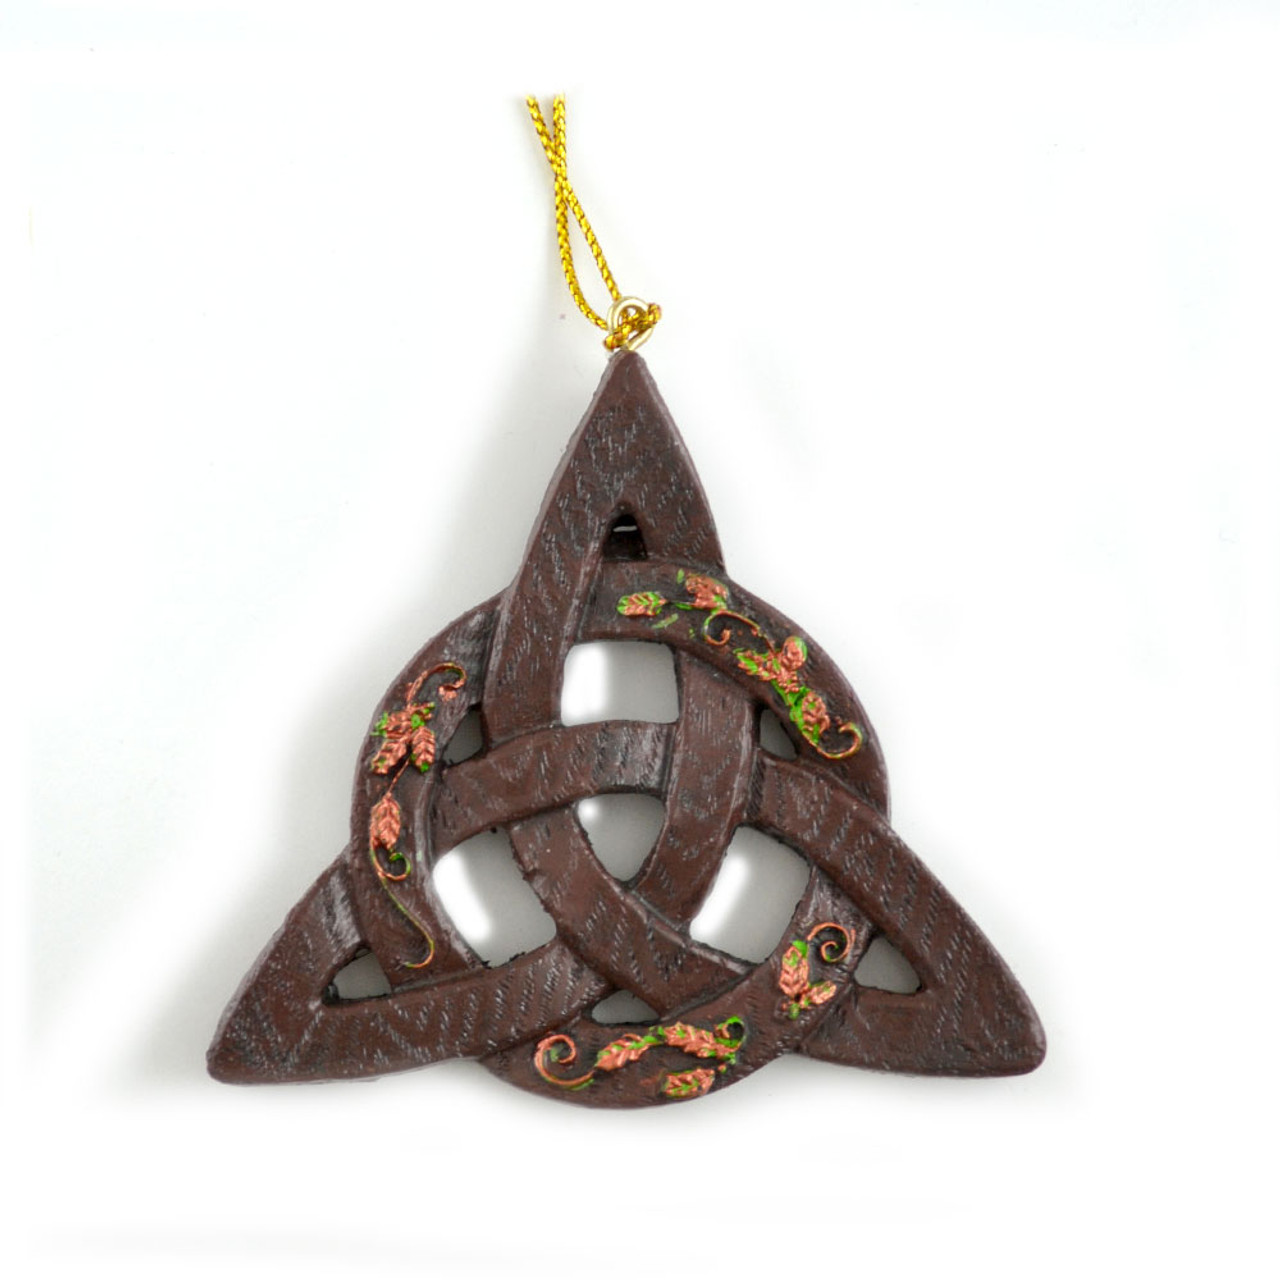 Celtic Trinity Knot Ornament with Card